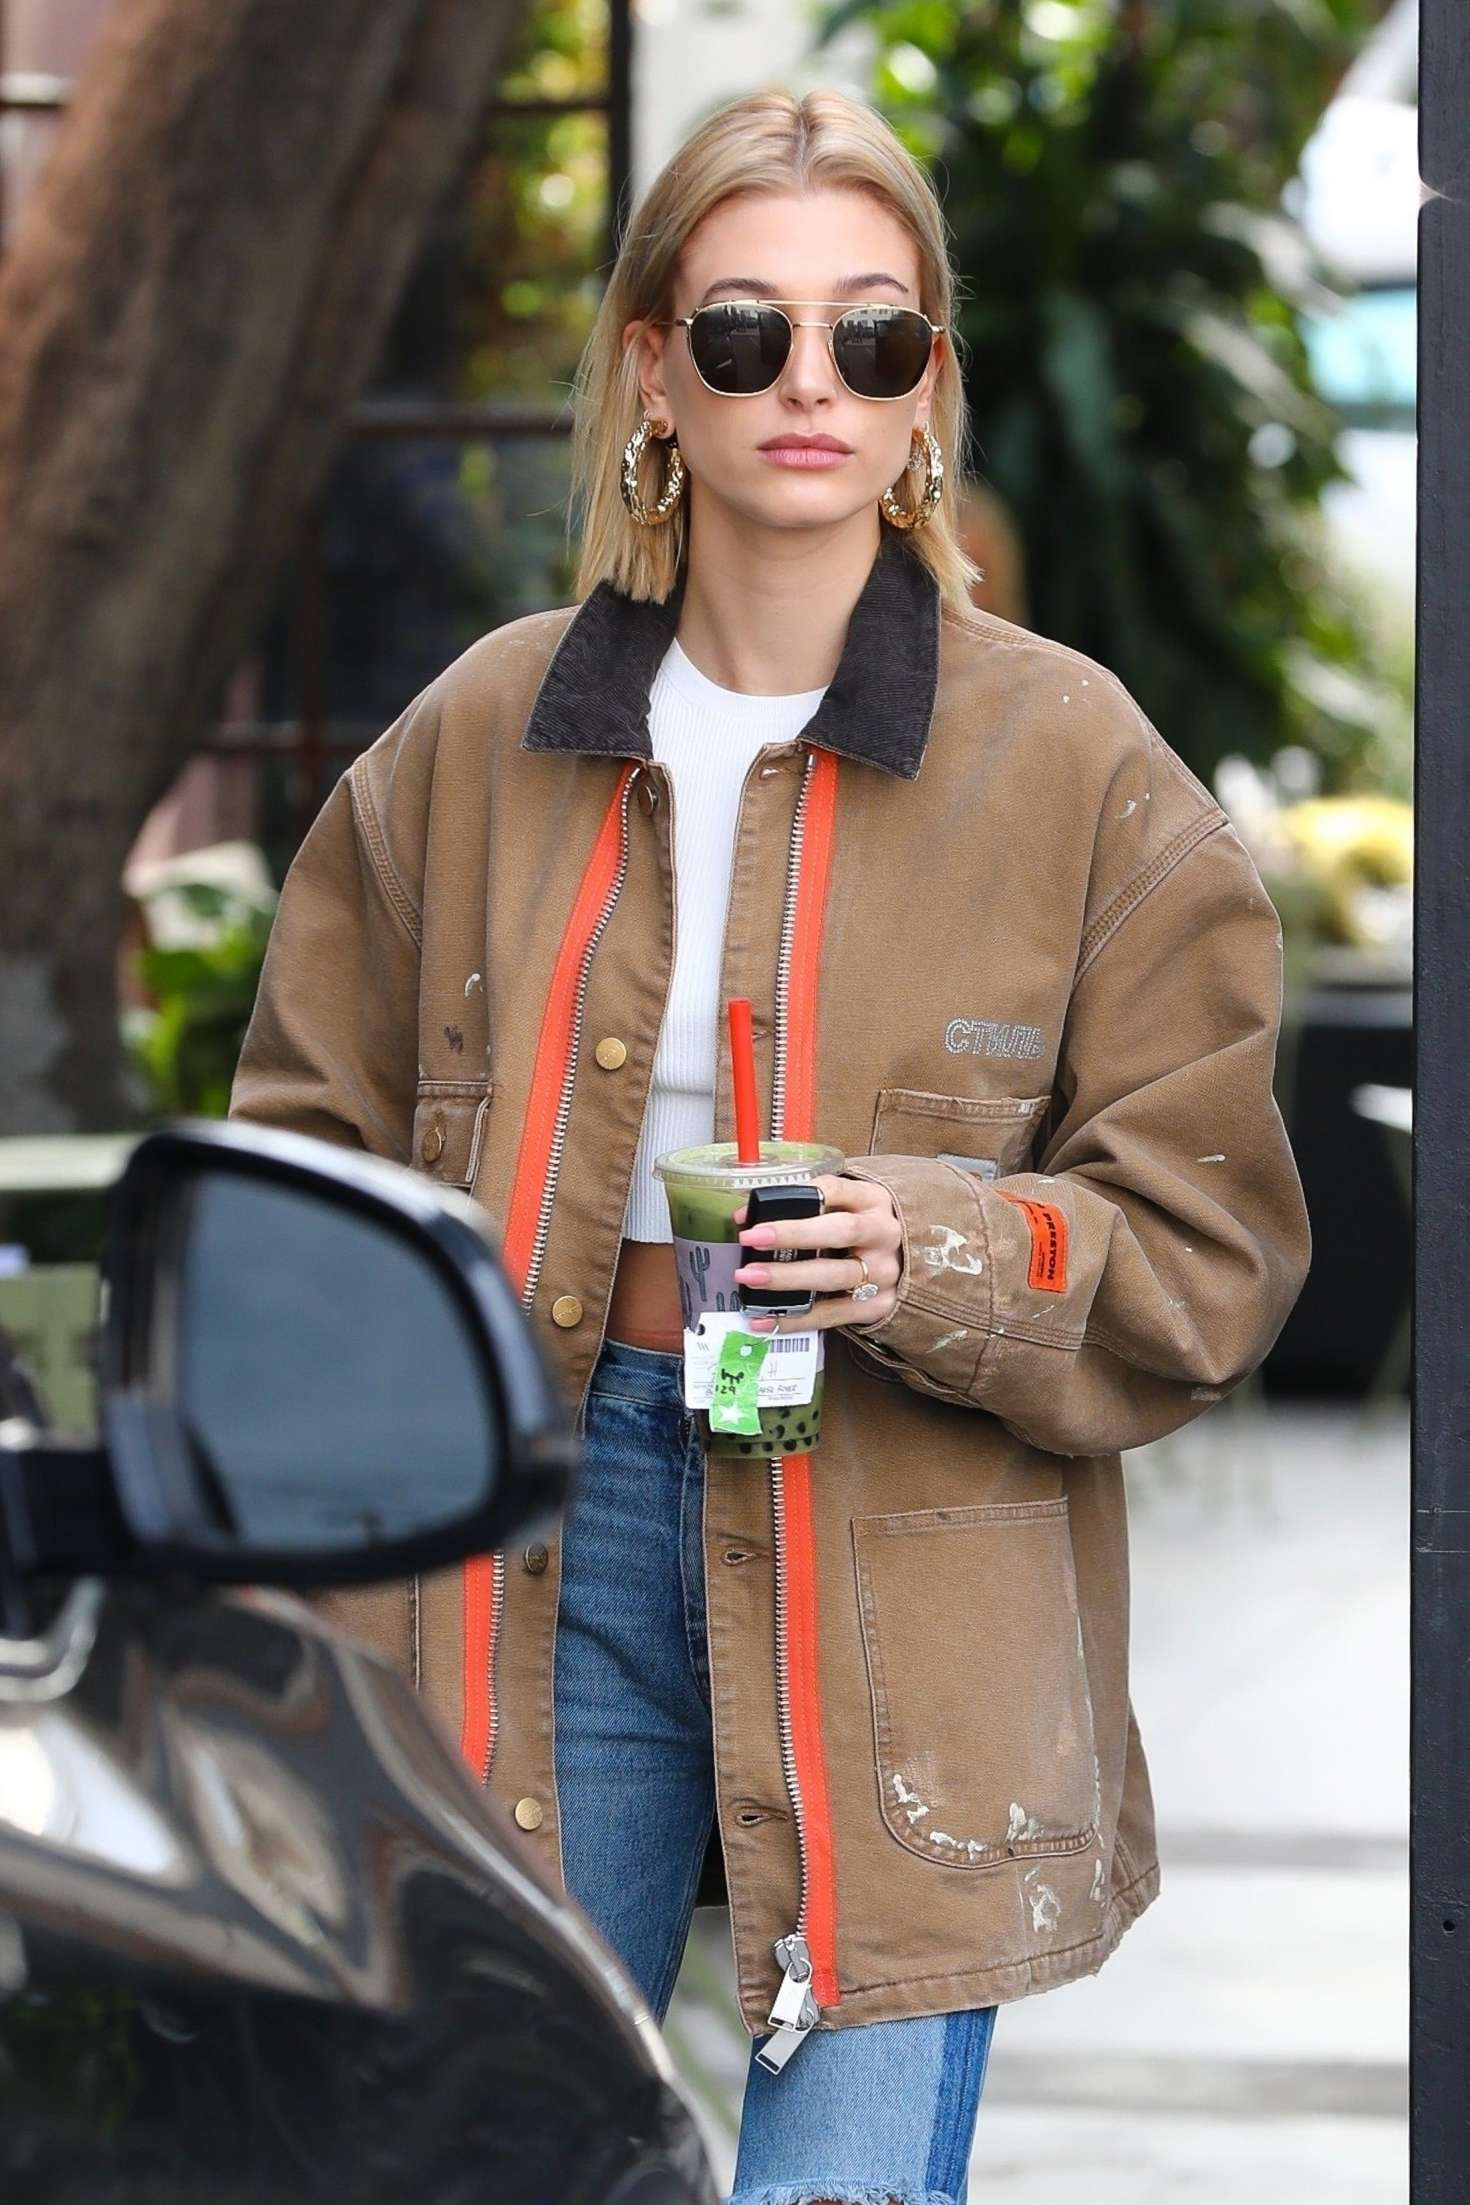 Hailey Baldwin at hair salon in Los Angeles